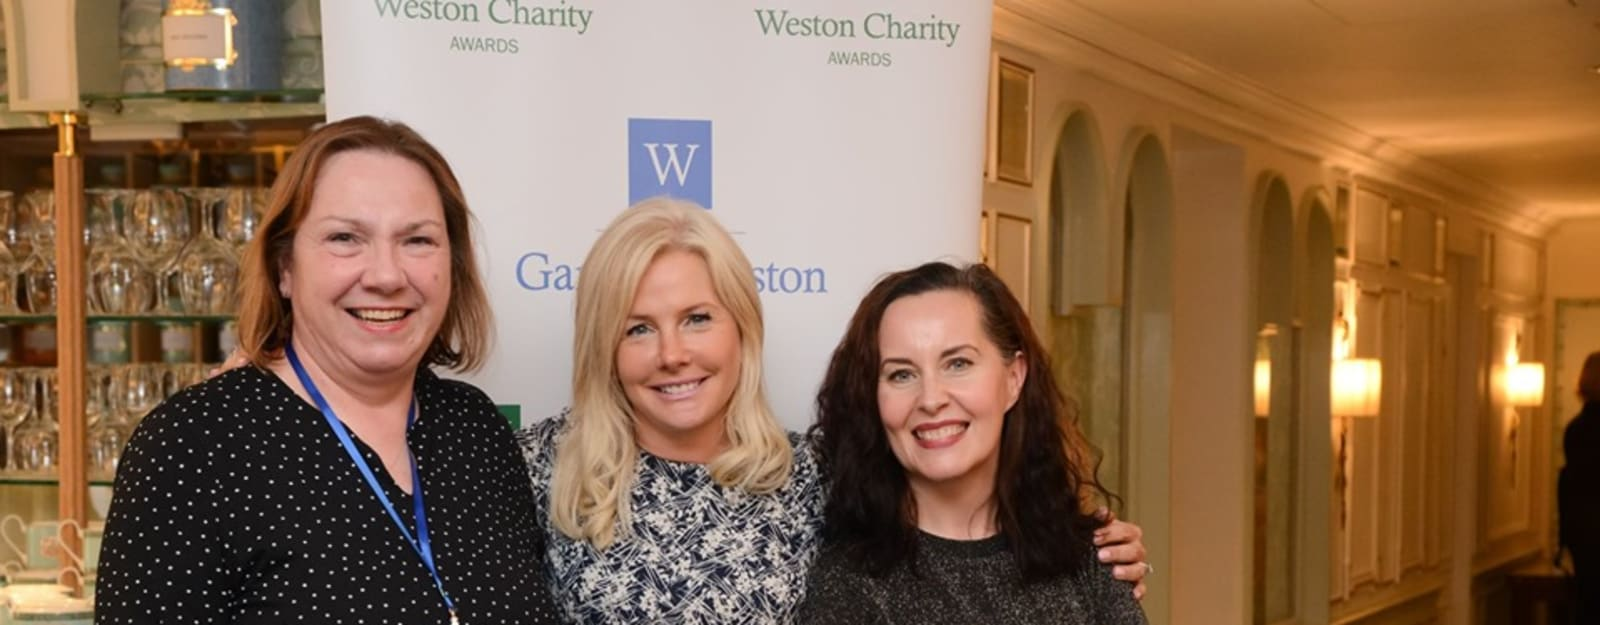 Weston Charity Awards Winners' Celebration Event